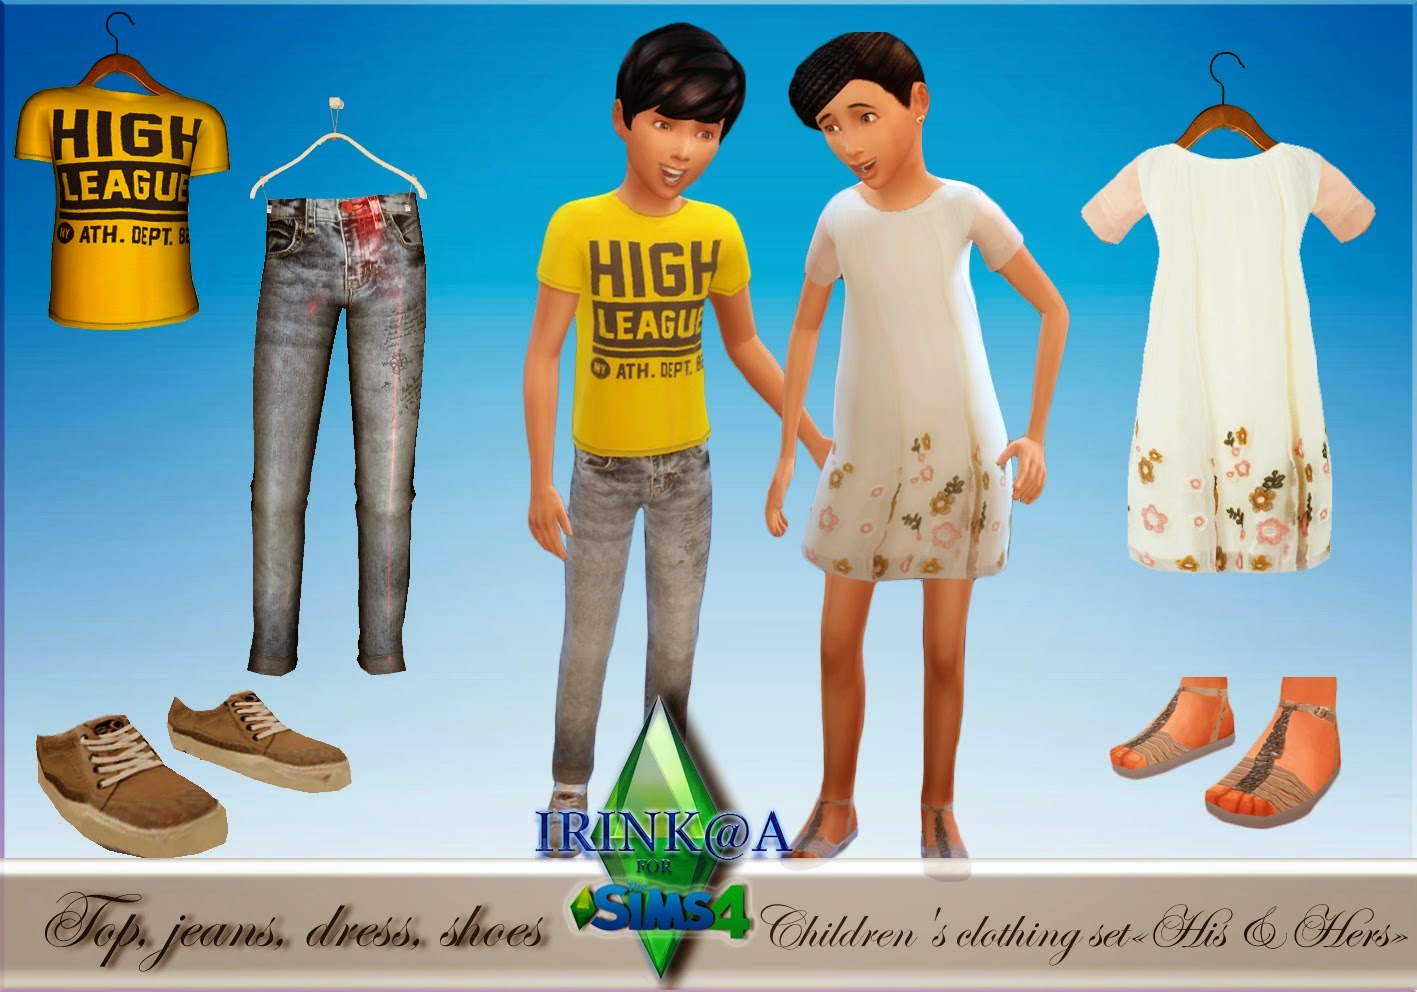 My Sims 4 Blog: Clothing and Shoes for Kids by Irink@a